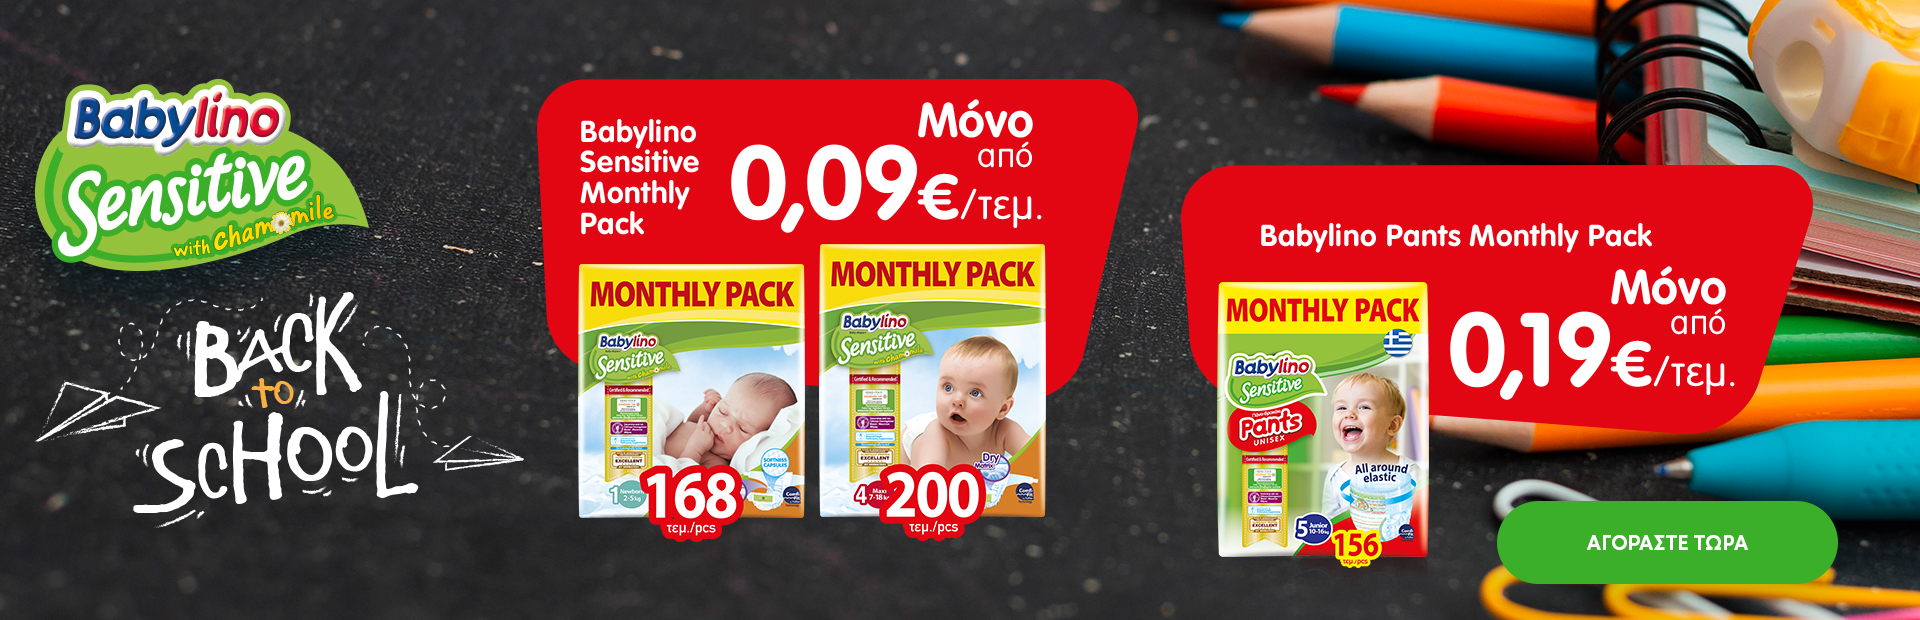 Babylino promo offers